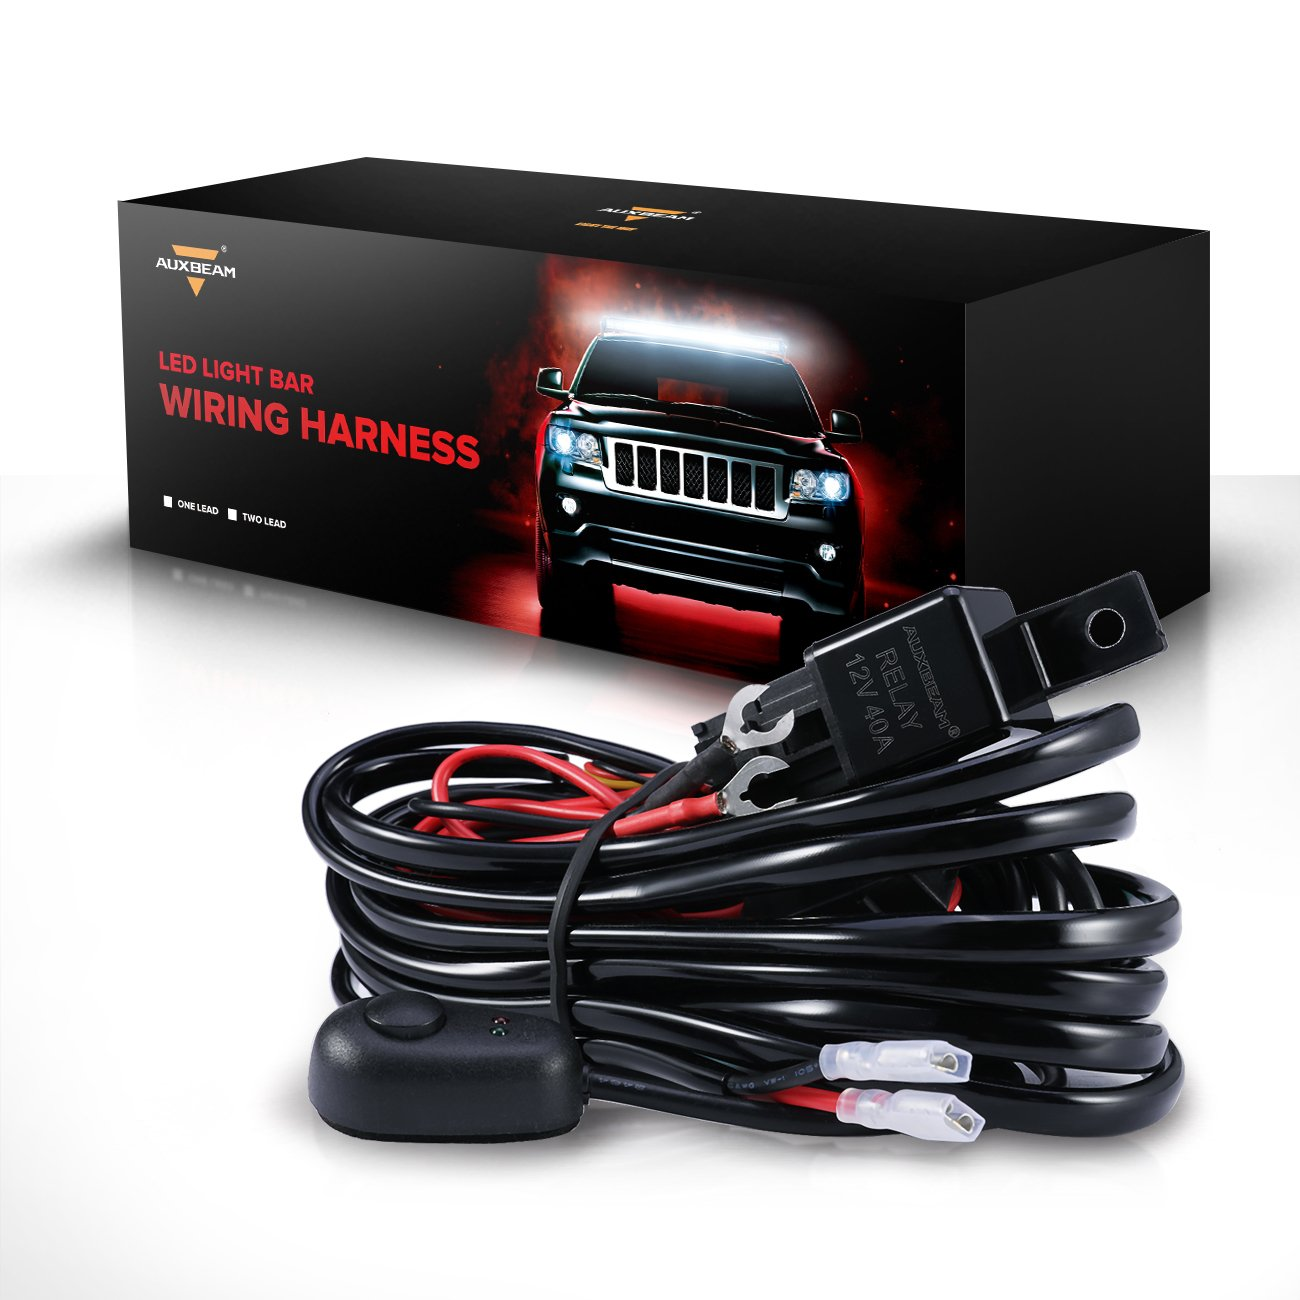 71s0Obz3RtL._SL1300_ amazon com auxbeam wiring harness kit for led light bar with fuse Auxbeam Driving at edmiracle.co